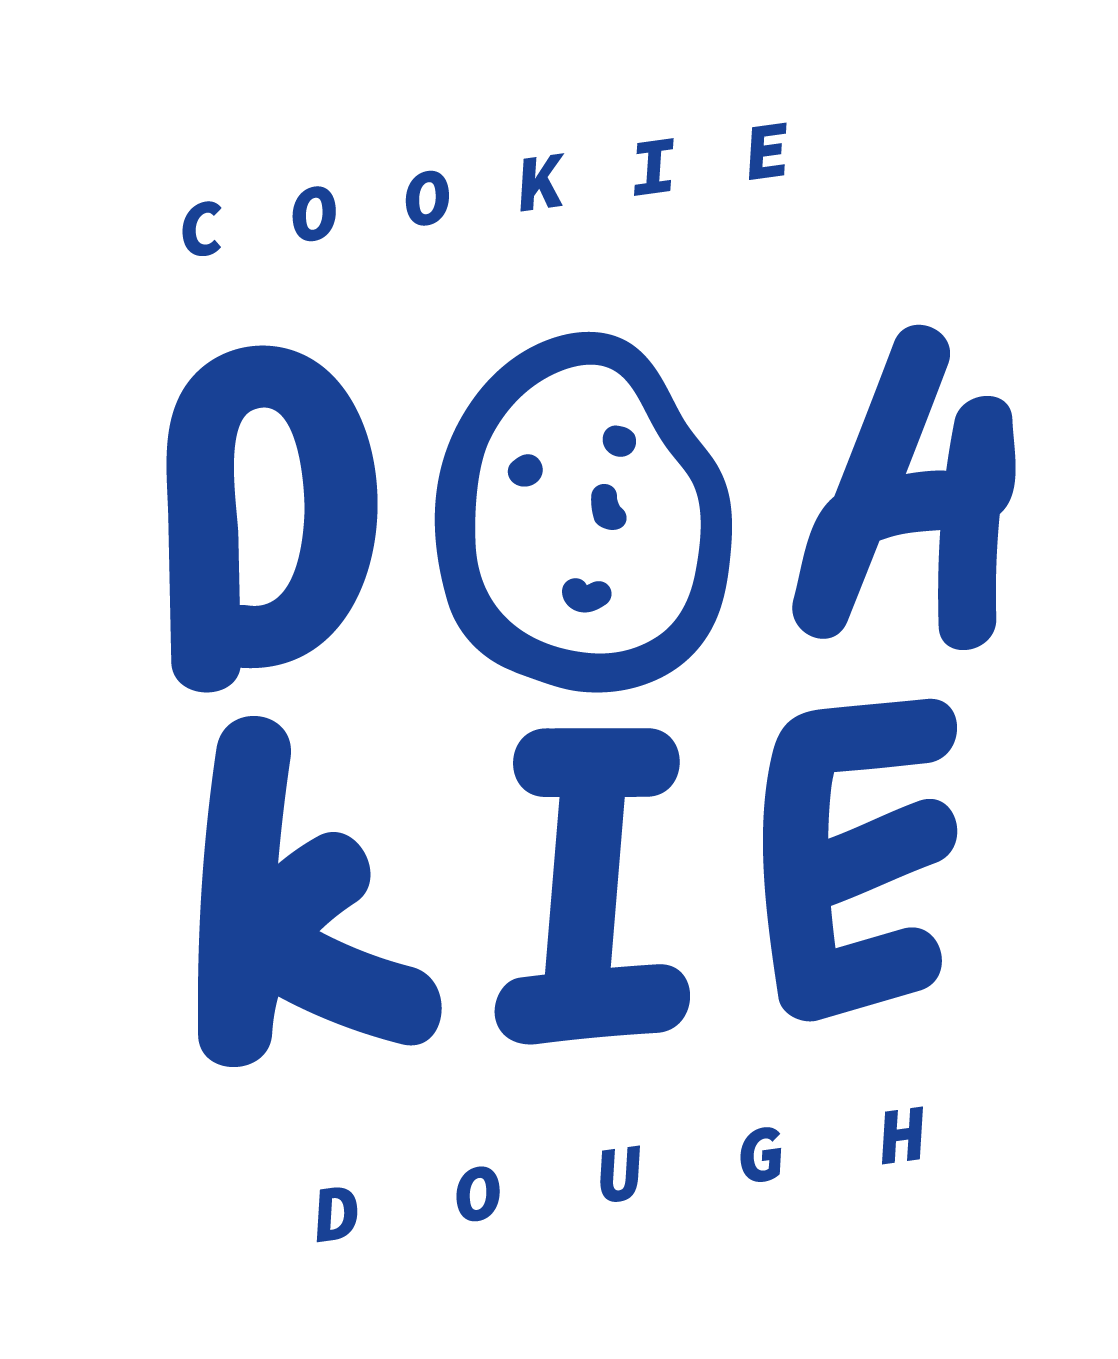 DOHKIE - The Edible Cookie Dough Shop